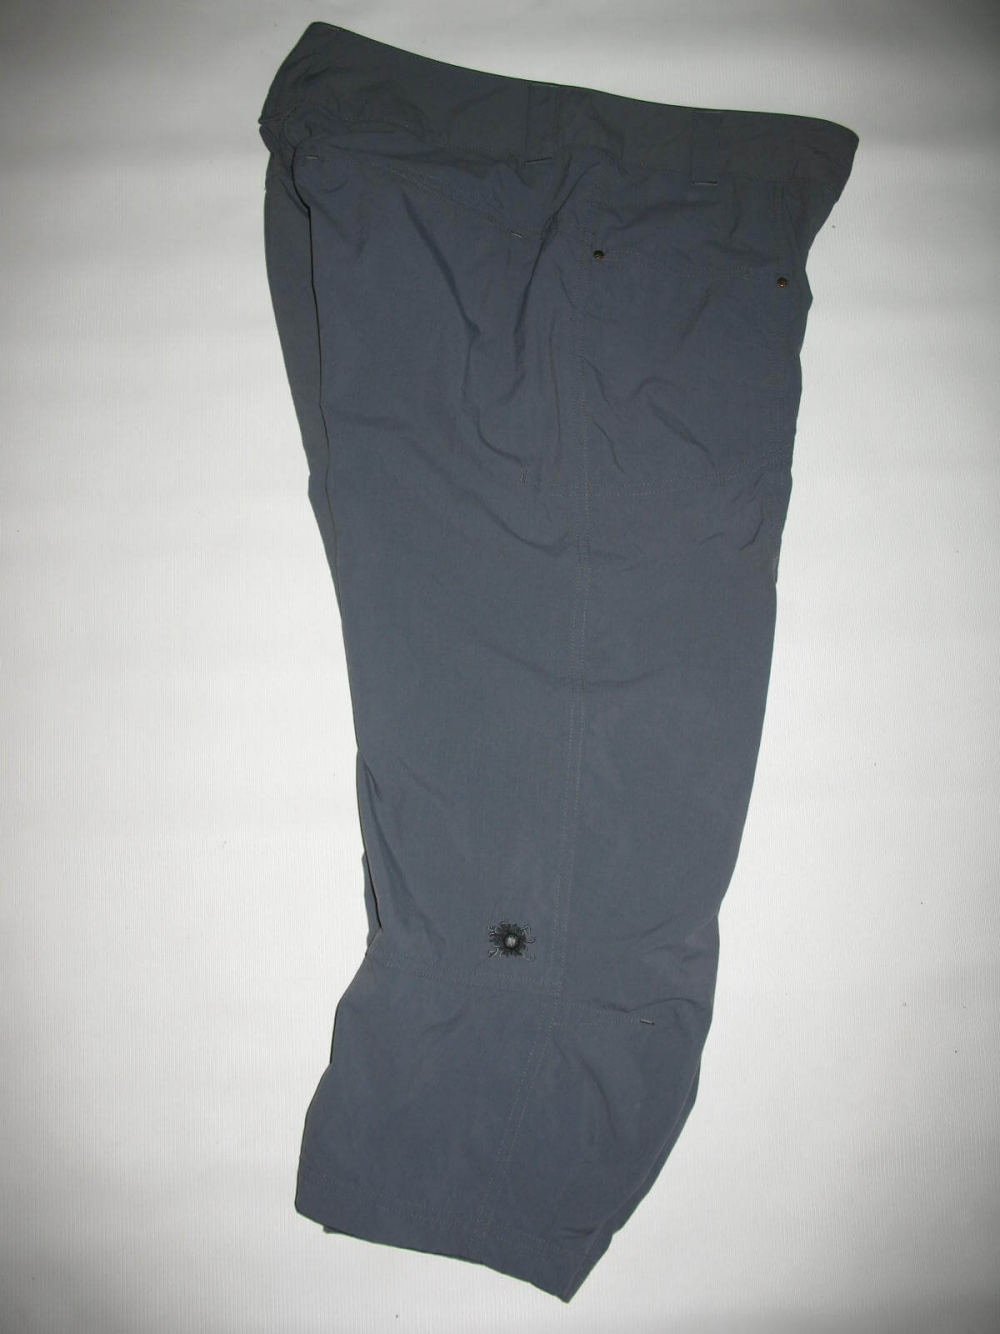 Бриджи SALEWA nola dry 3/4 pants lady (размер XL/L) - 4